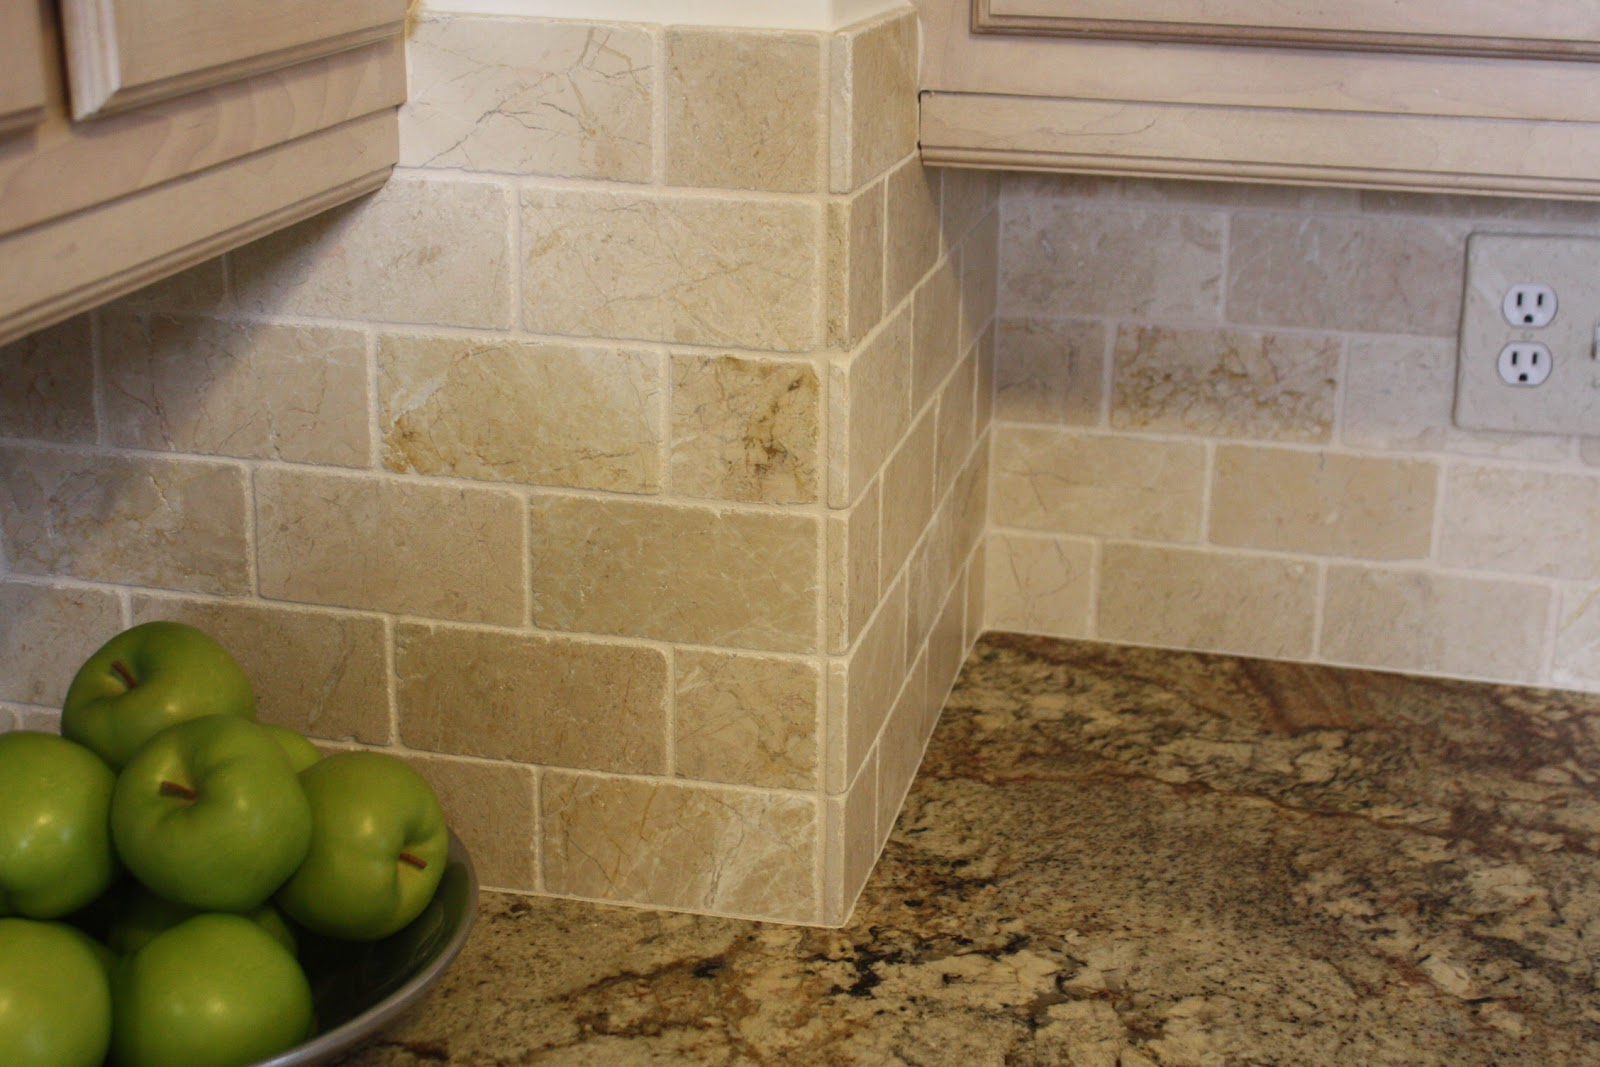 Natural Stone Backsplash tumbled marble backsplash is beautiful in a subway tile pattern